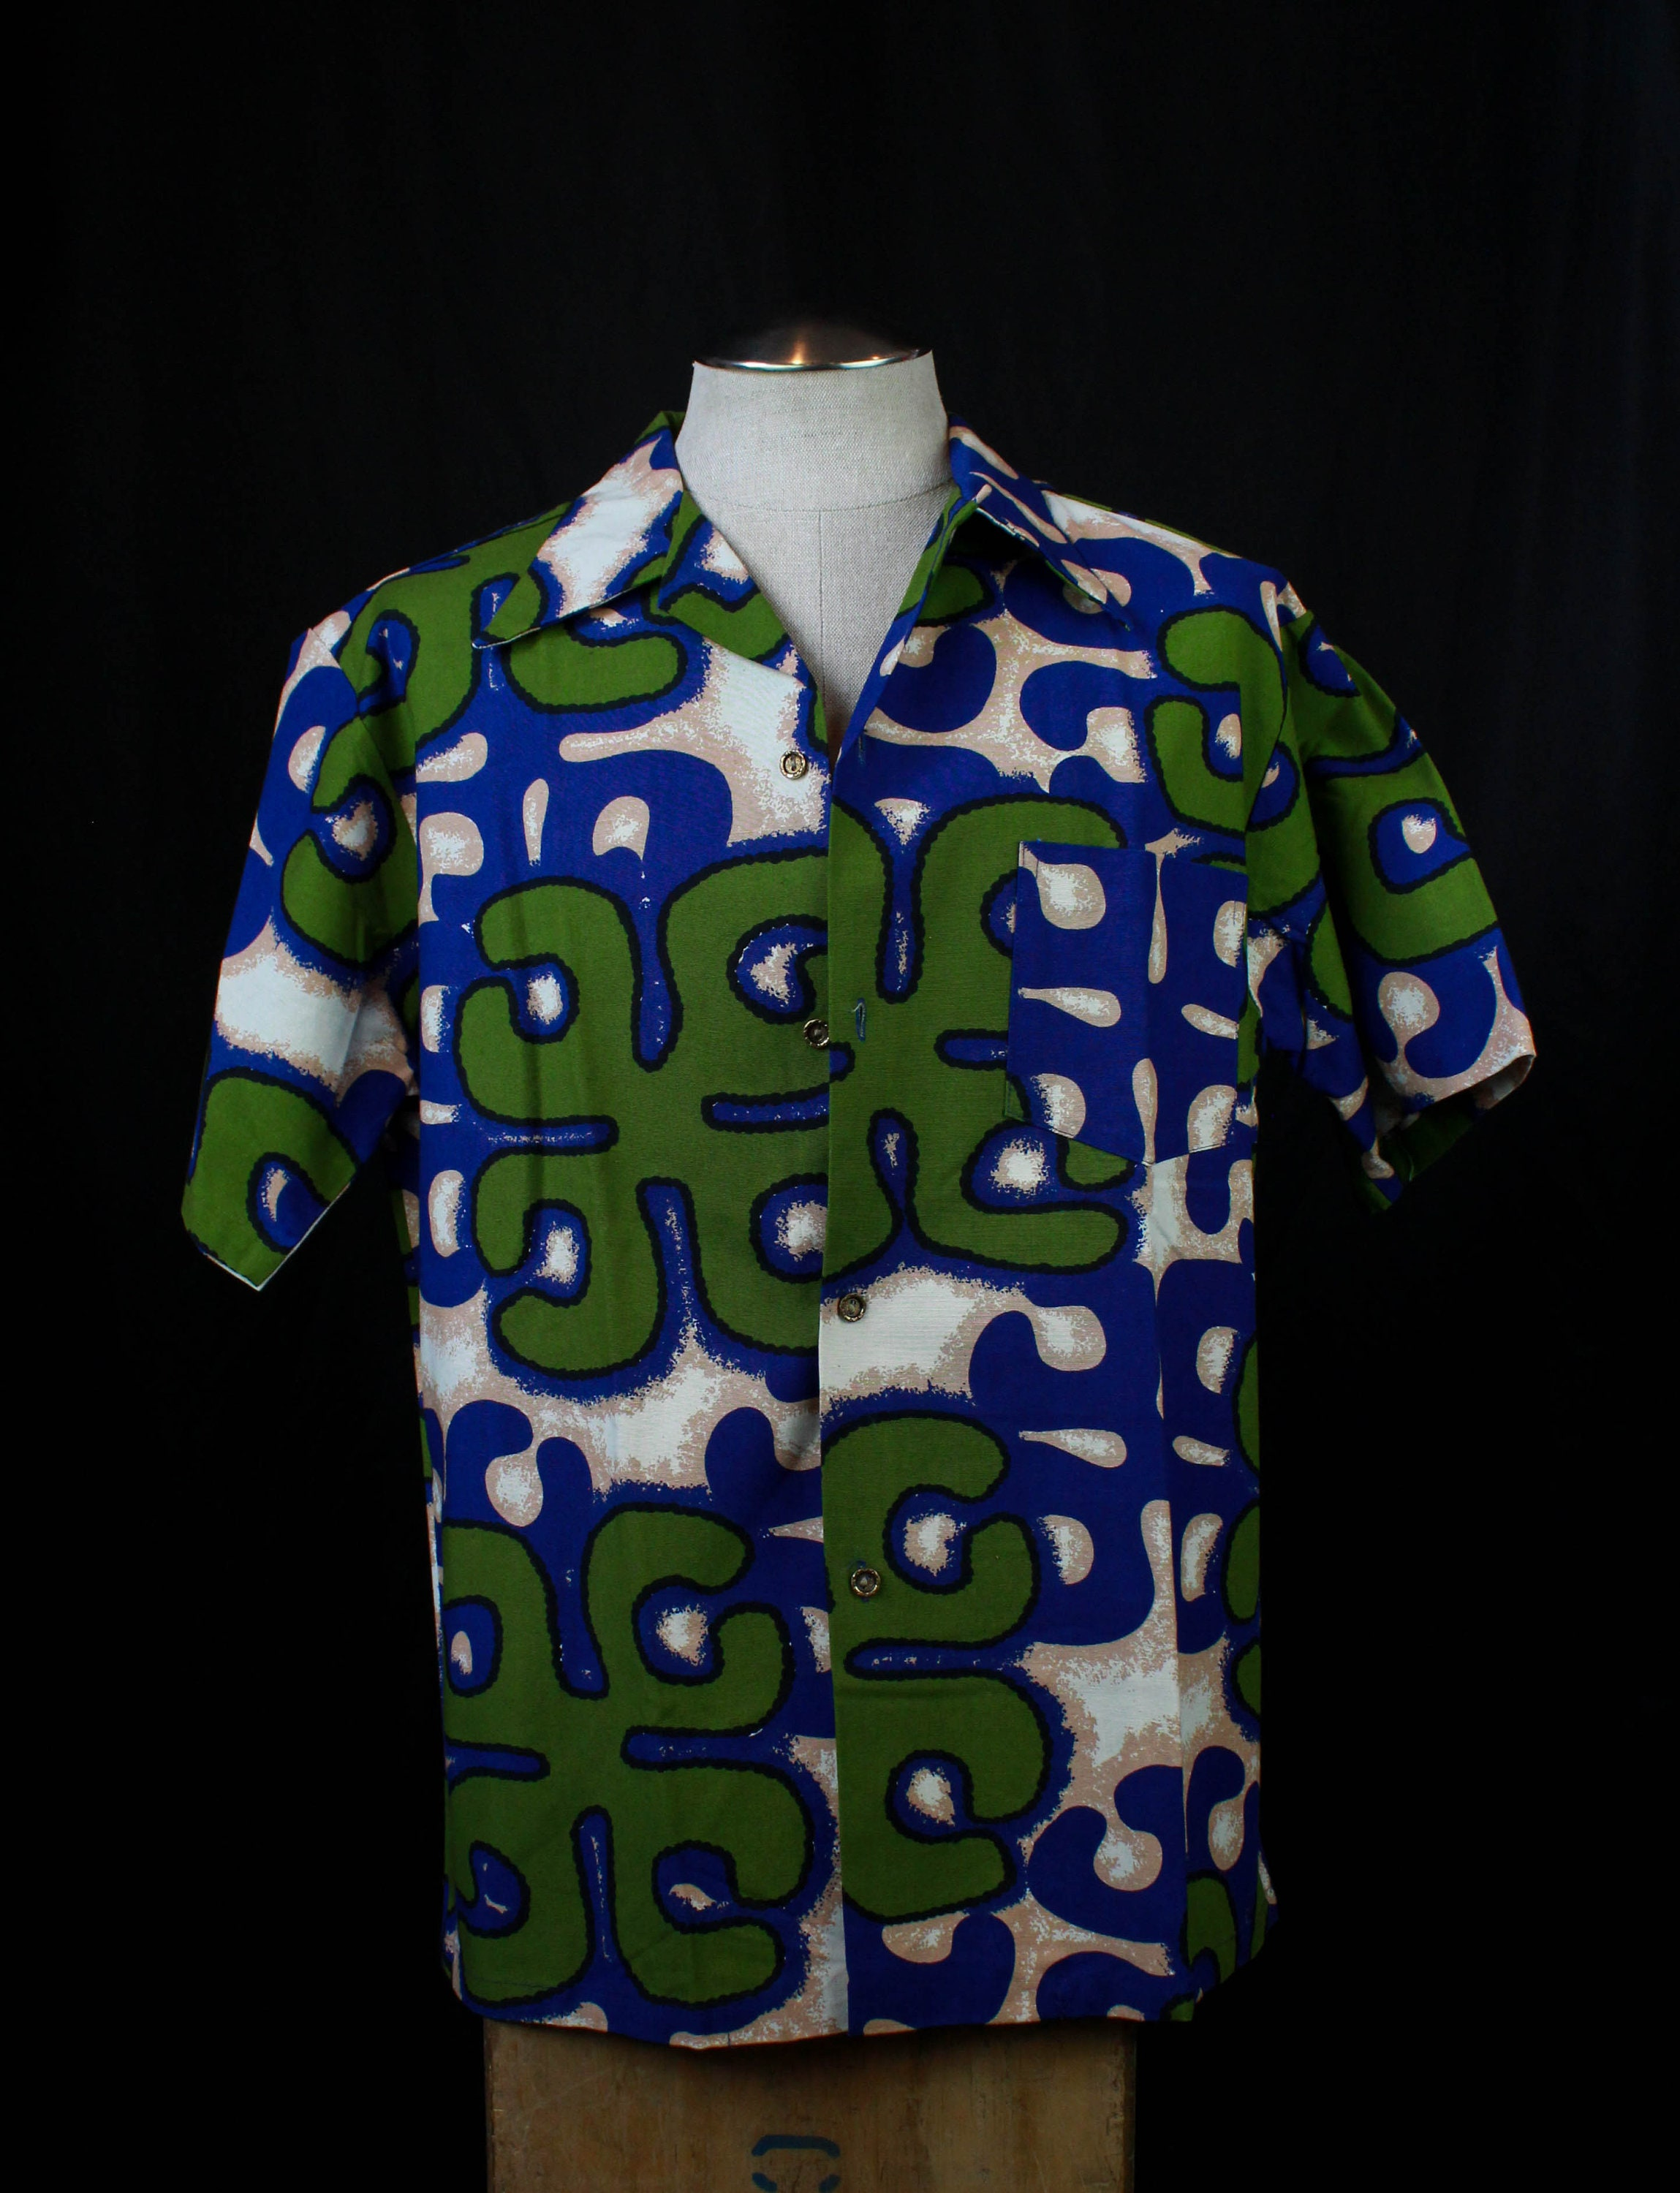 1940s Men's Shirts, Sweaters, Vests Mens Vintage 40s Aloha Hawaiian Shirt Blue Green Extra Large Hawaii Resort Shop $0.00 AT vintagedancer.com